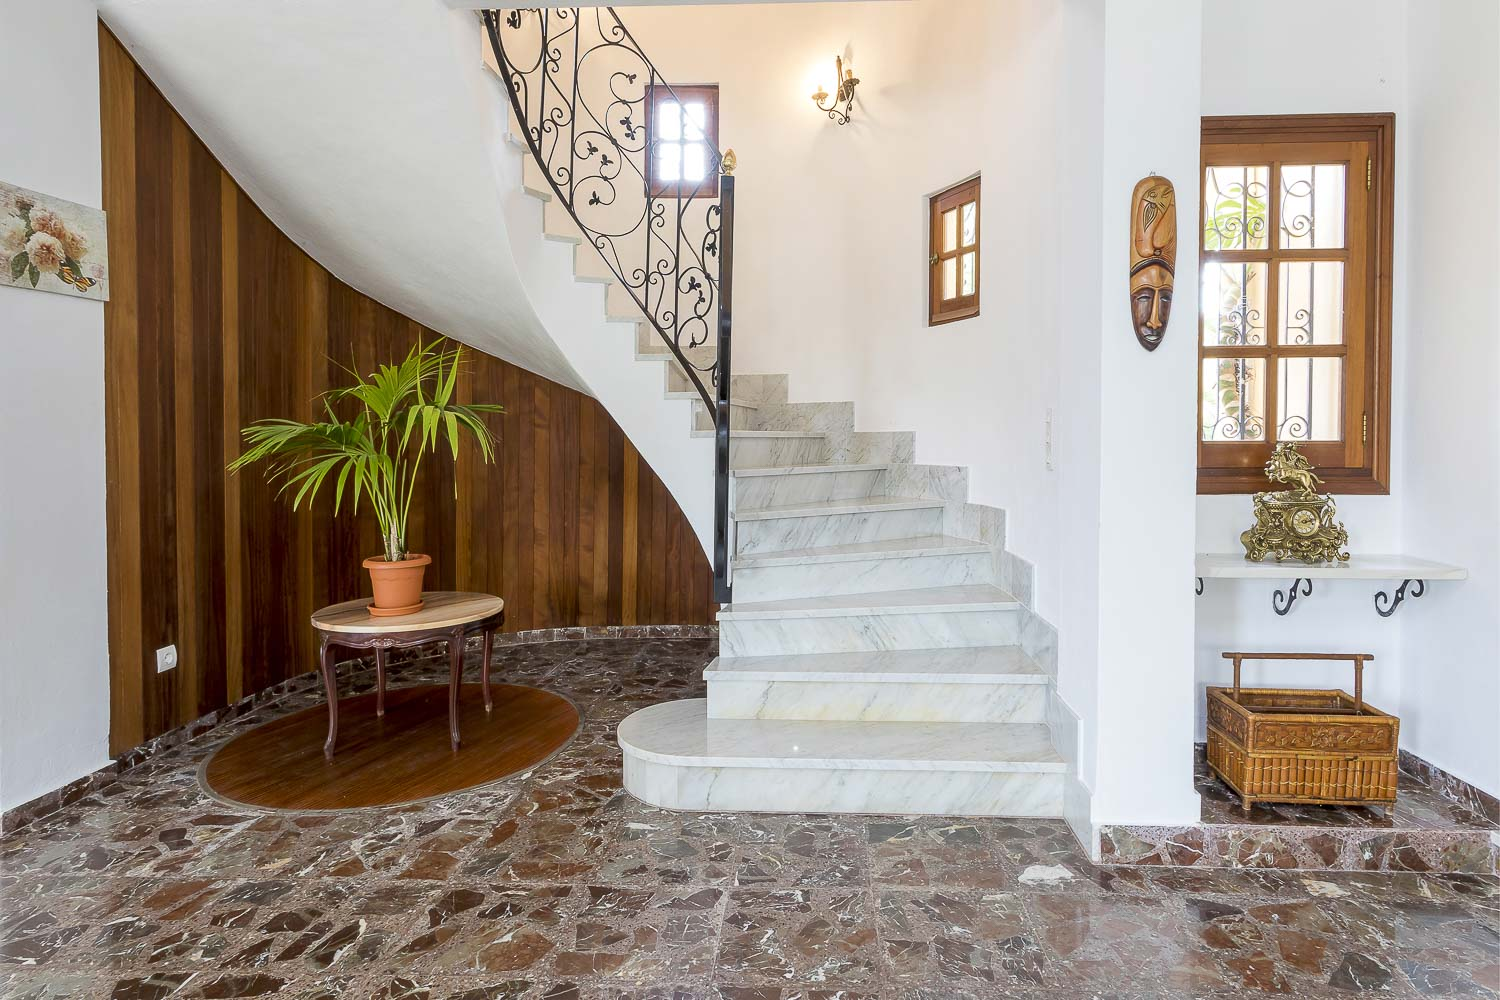 Marble stairs to second floor in a rental house in Ibiza